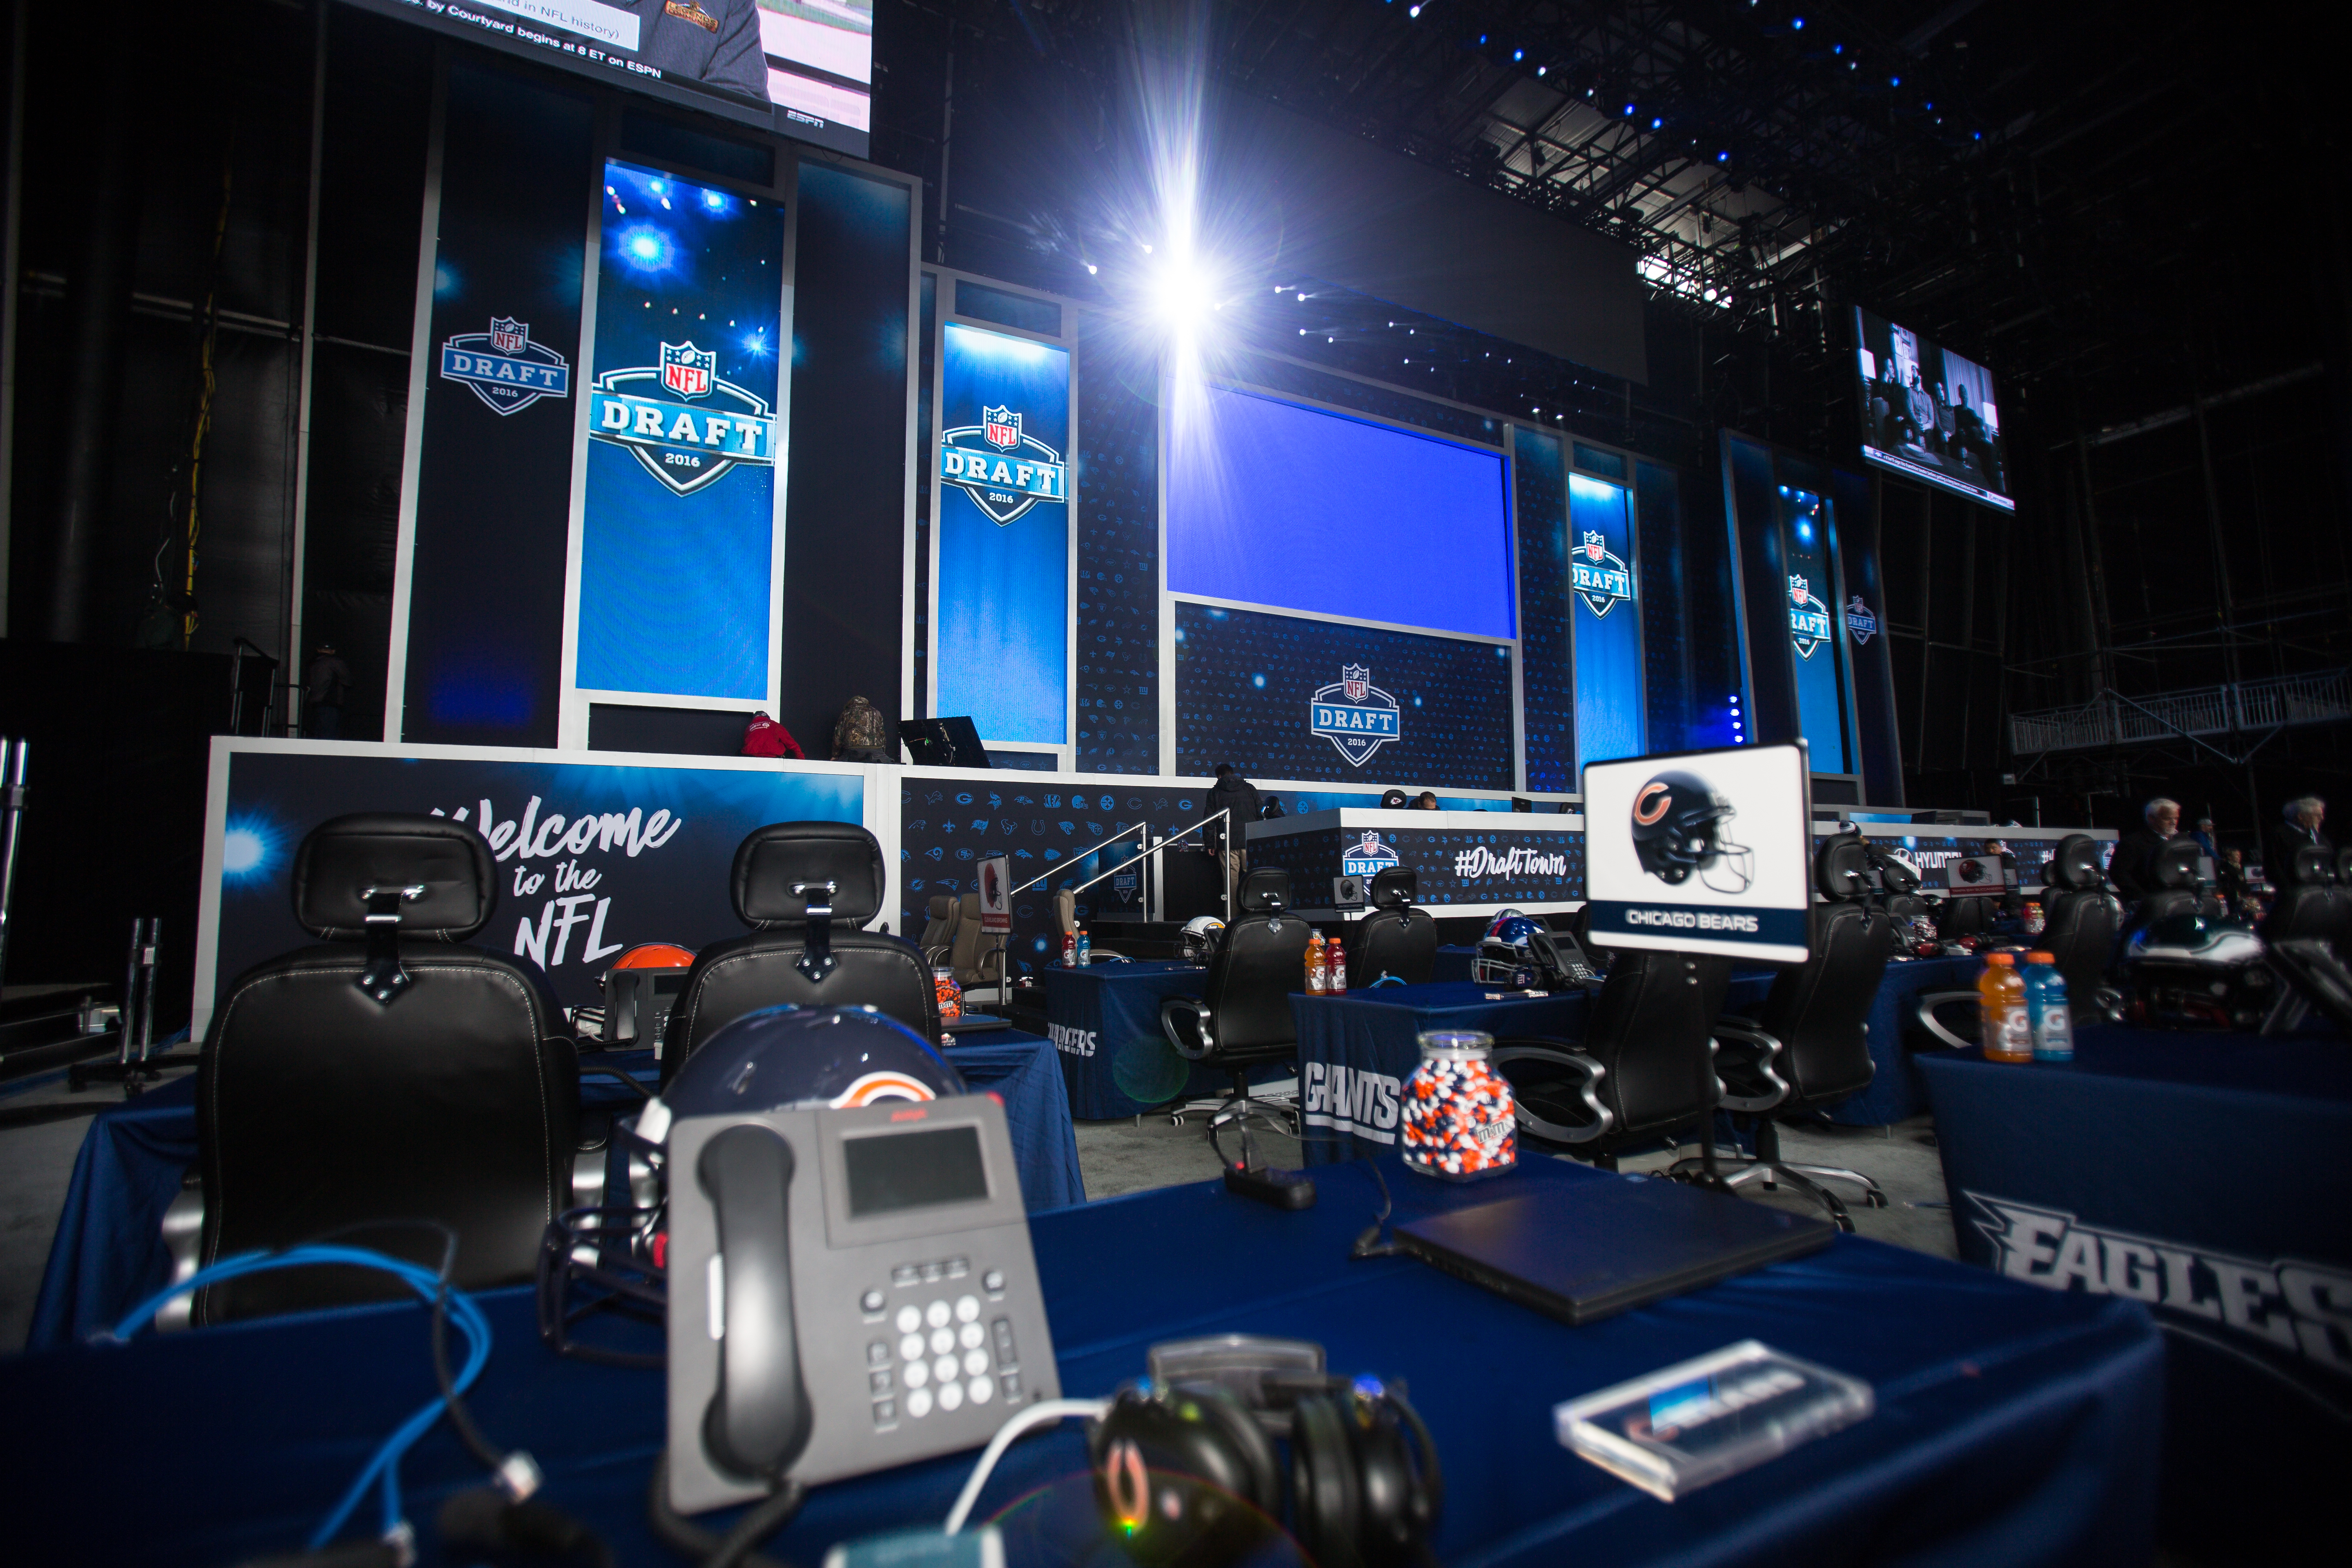 Live coverage: Rounds Four through Seven of the 2016 NFL Draft